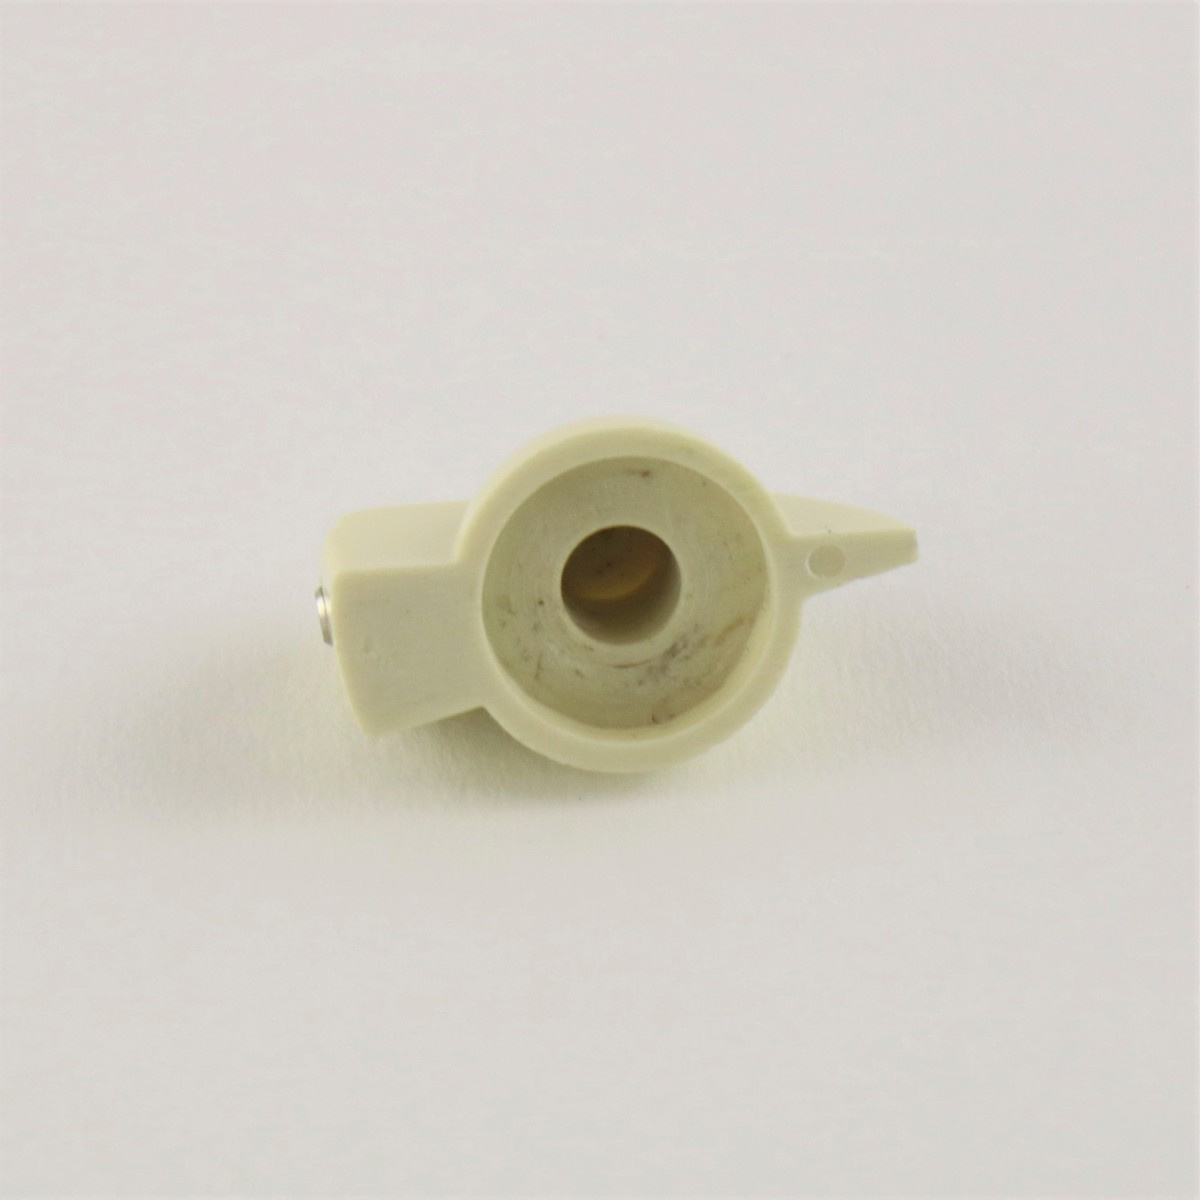 Tonepros Standard Lp Bridge Large Inserts Chrome